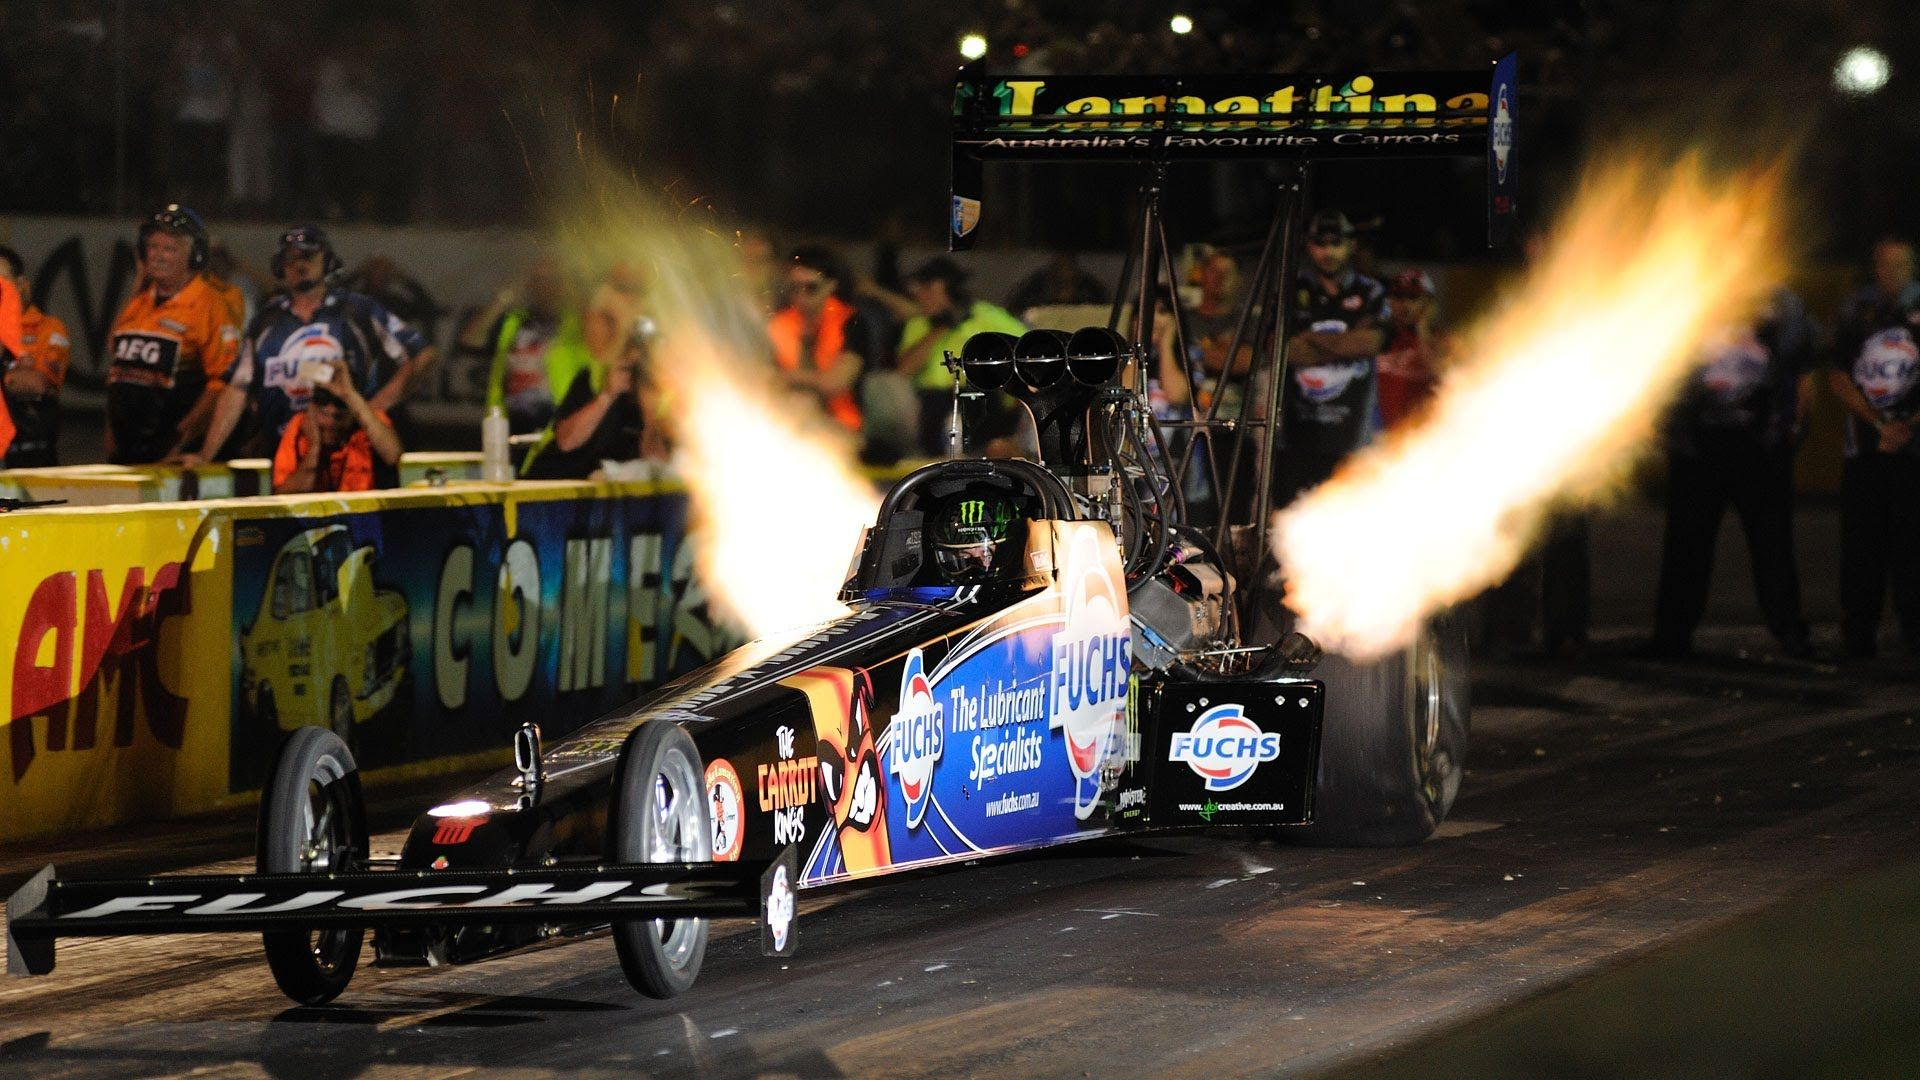 Pin By Garage On Xmode Drag Racing Top Fuel Dragster Nhra Drag